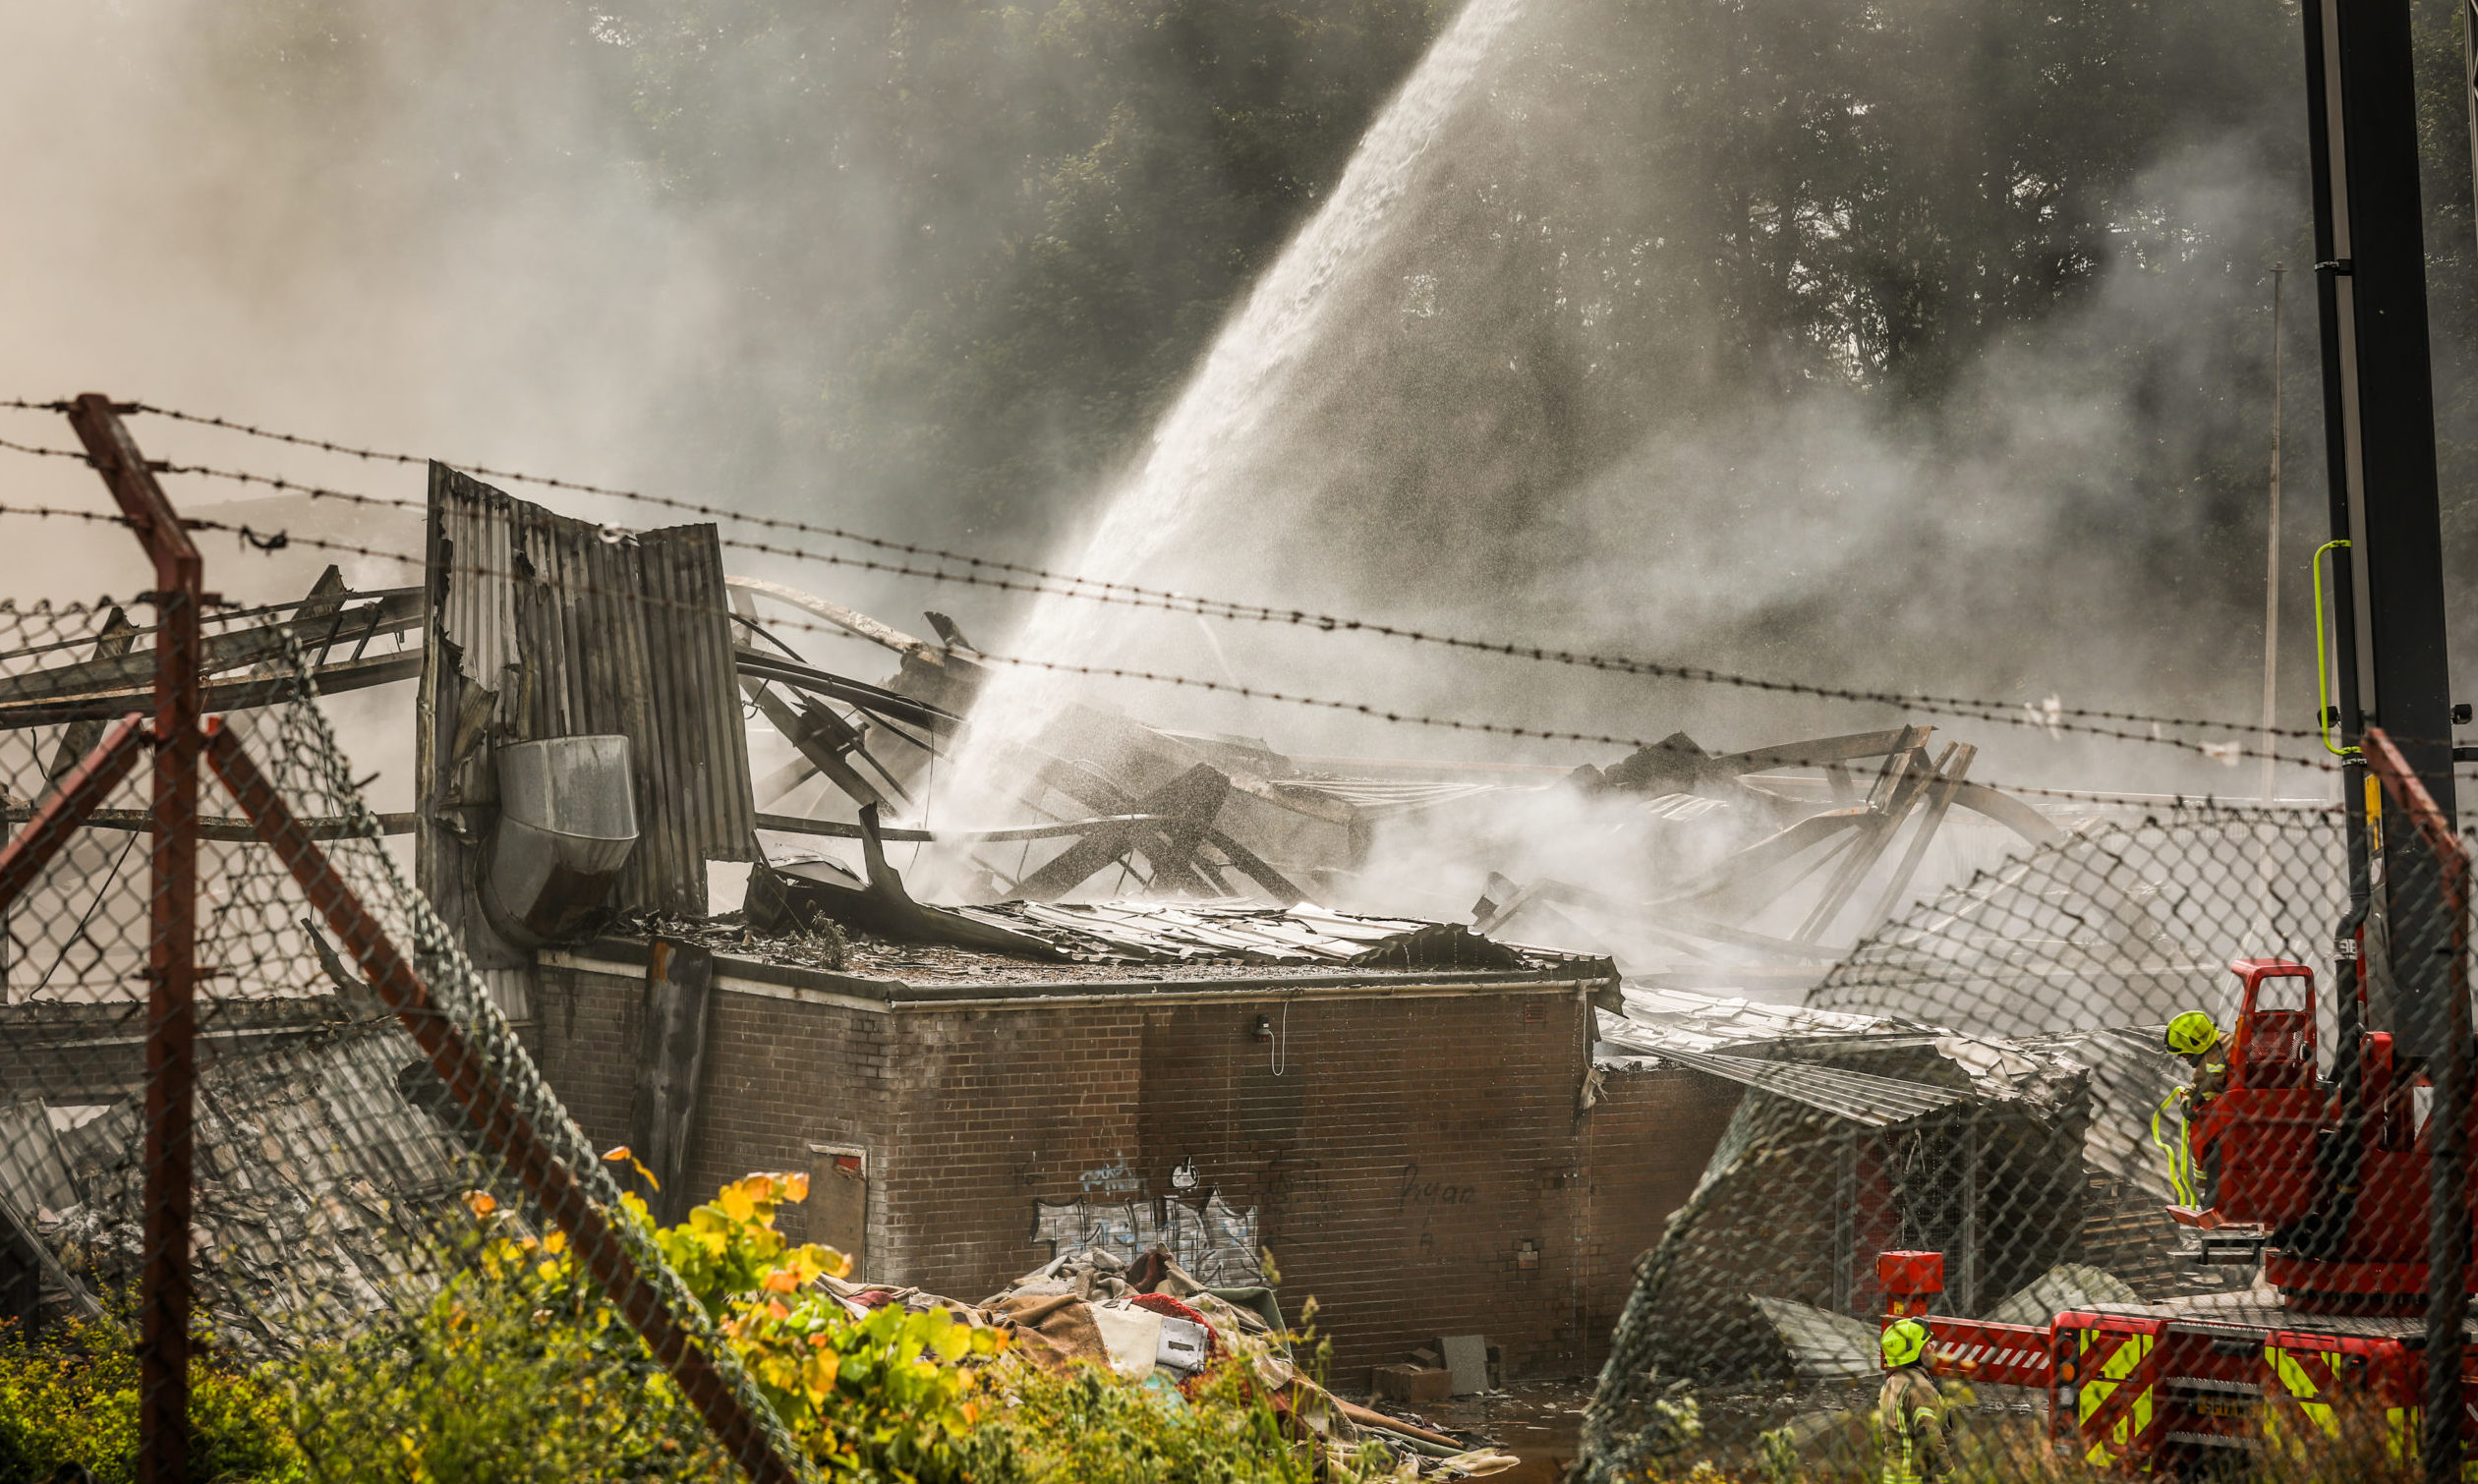 The smoking remains of the fire-hit building at Baldovie Industrial Estate.